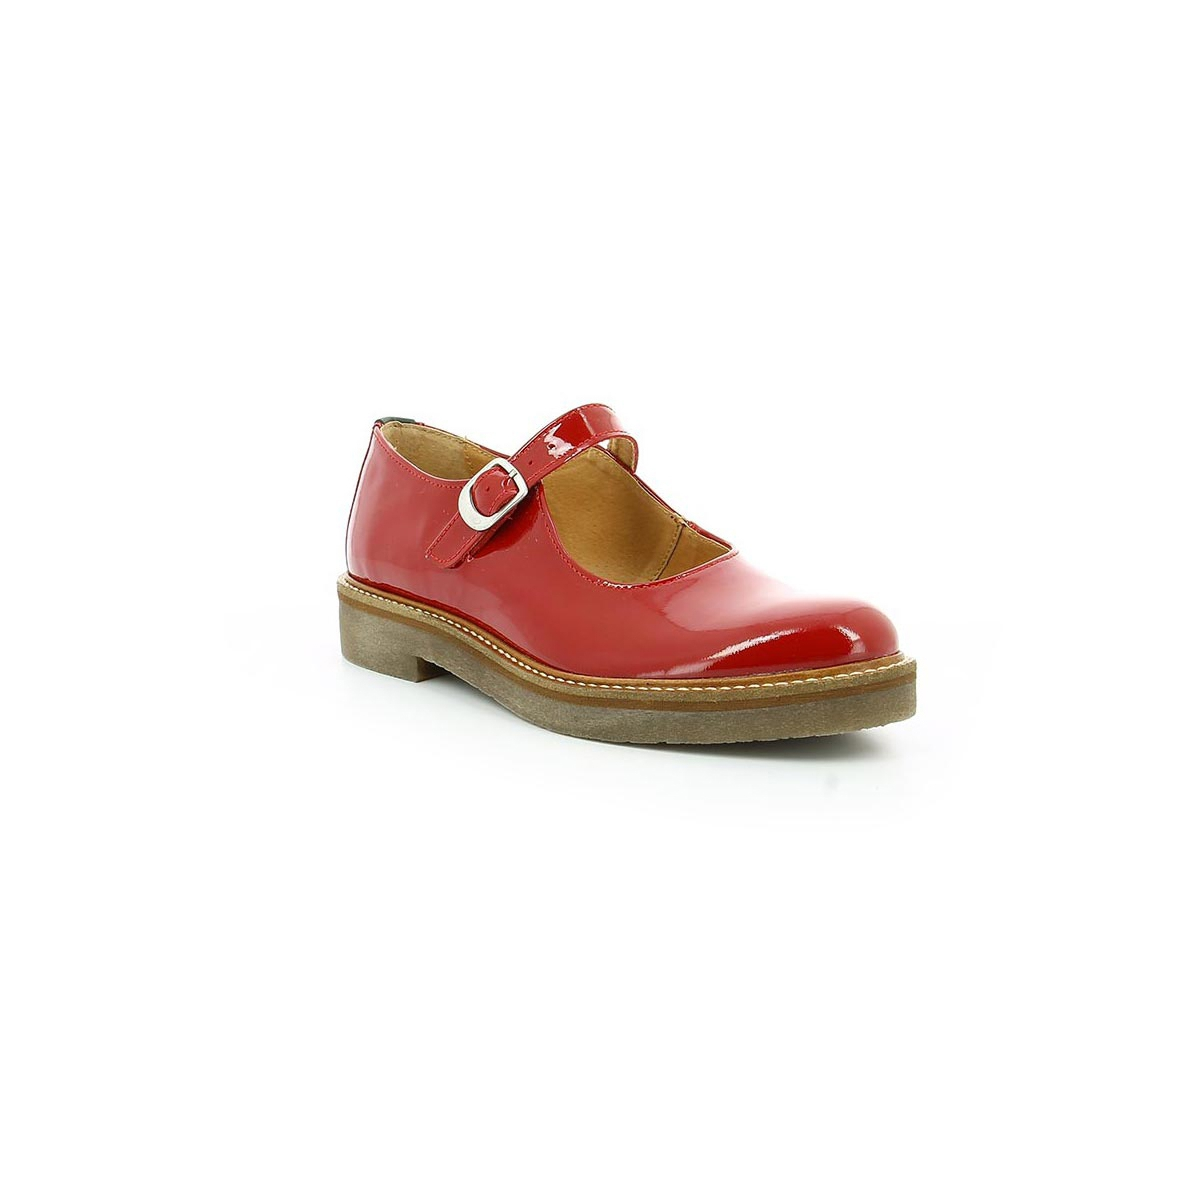 chaussures femme oxitane rouge vernis kickers. Black Bedroom Furniture Sets. Home Design Ideas